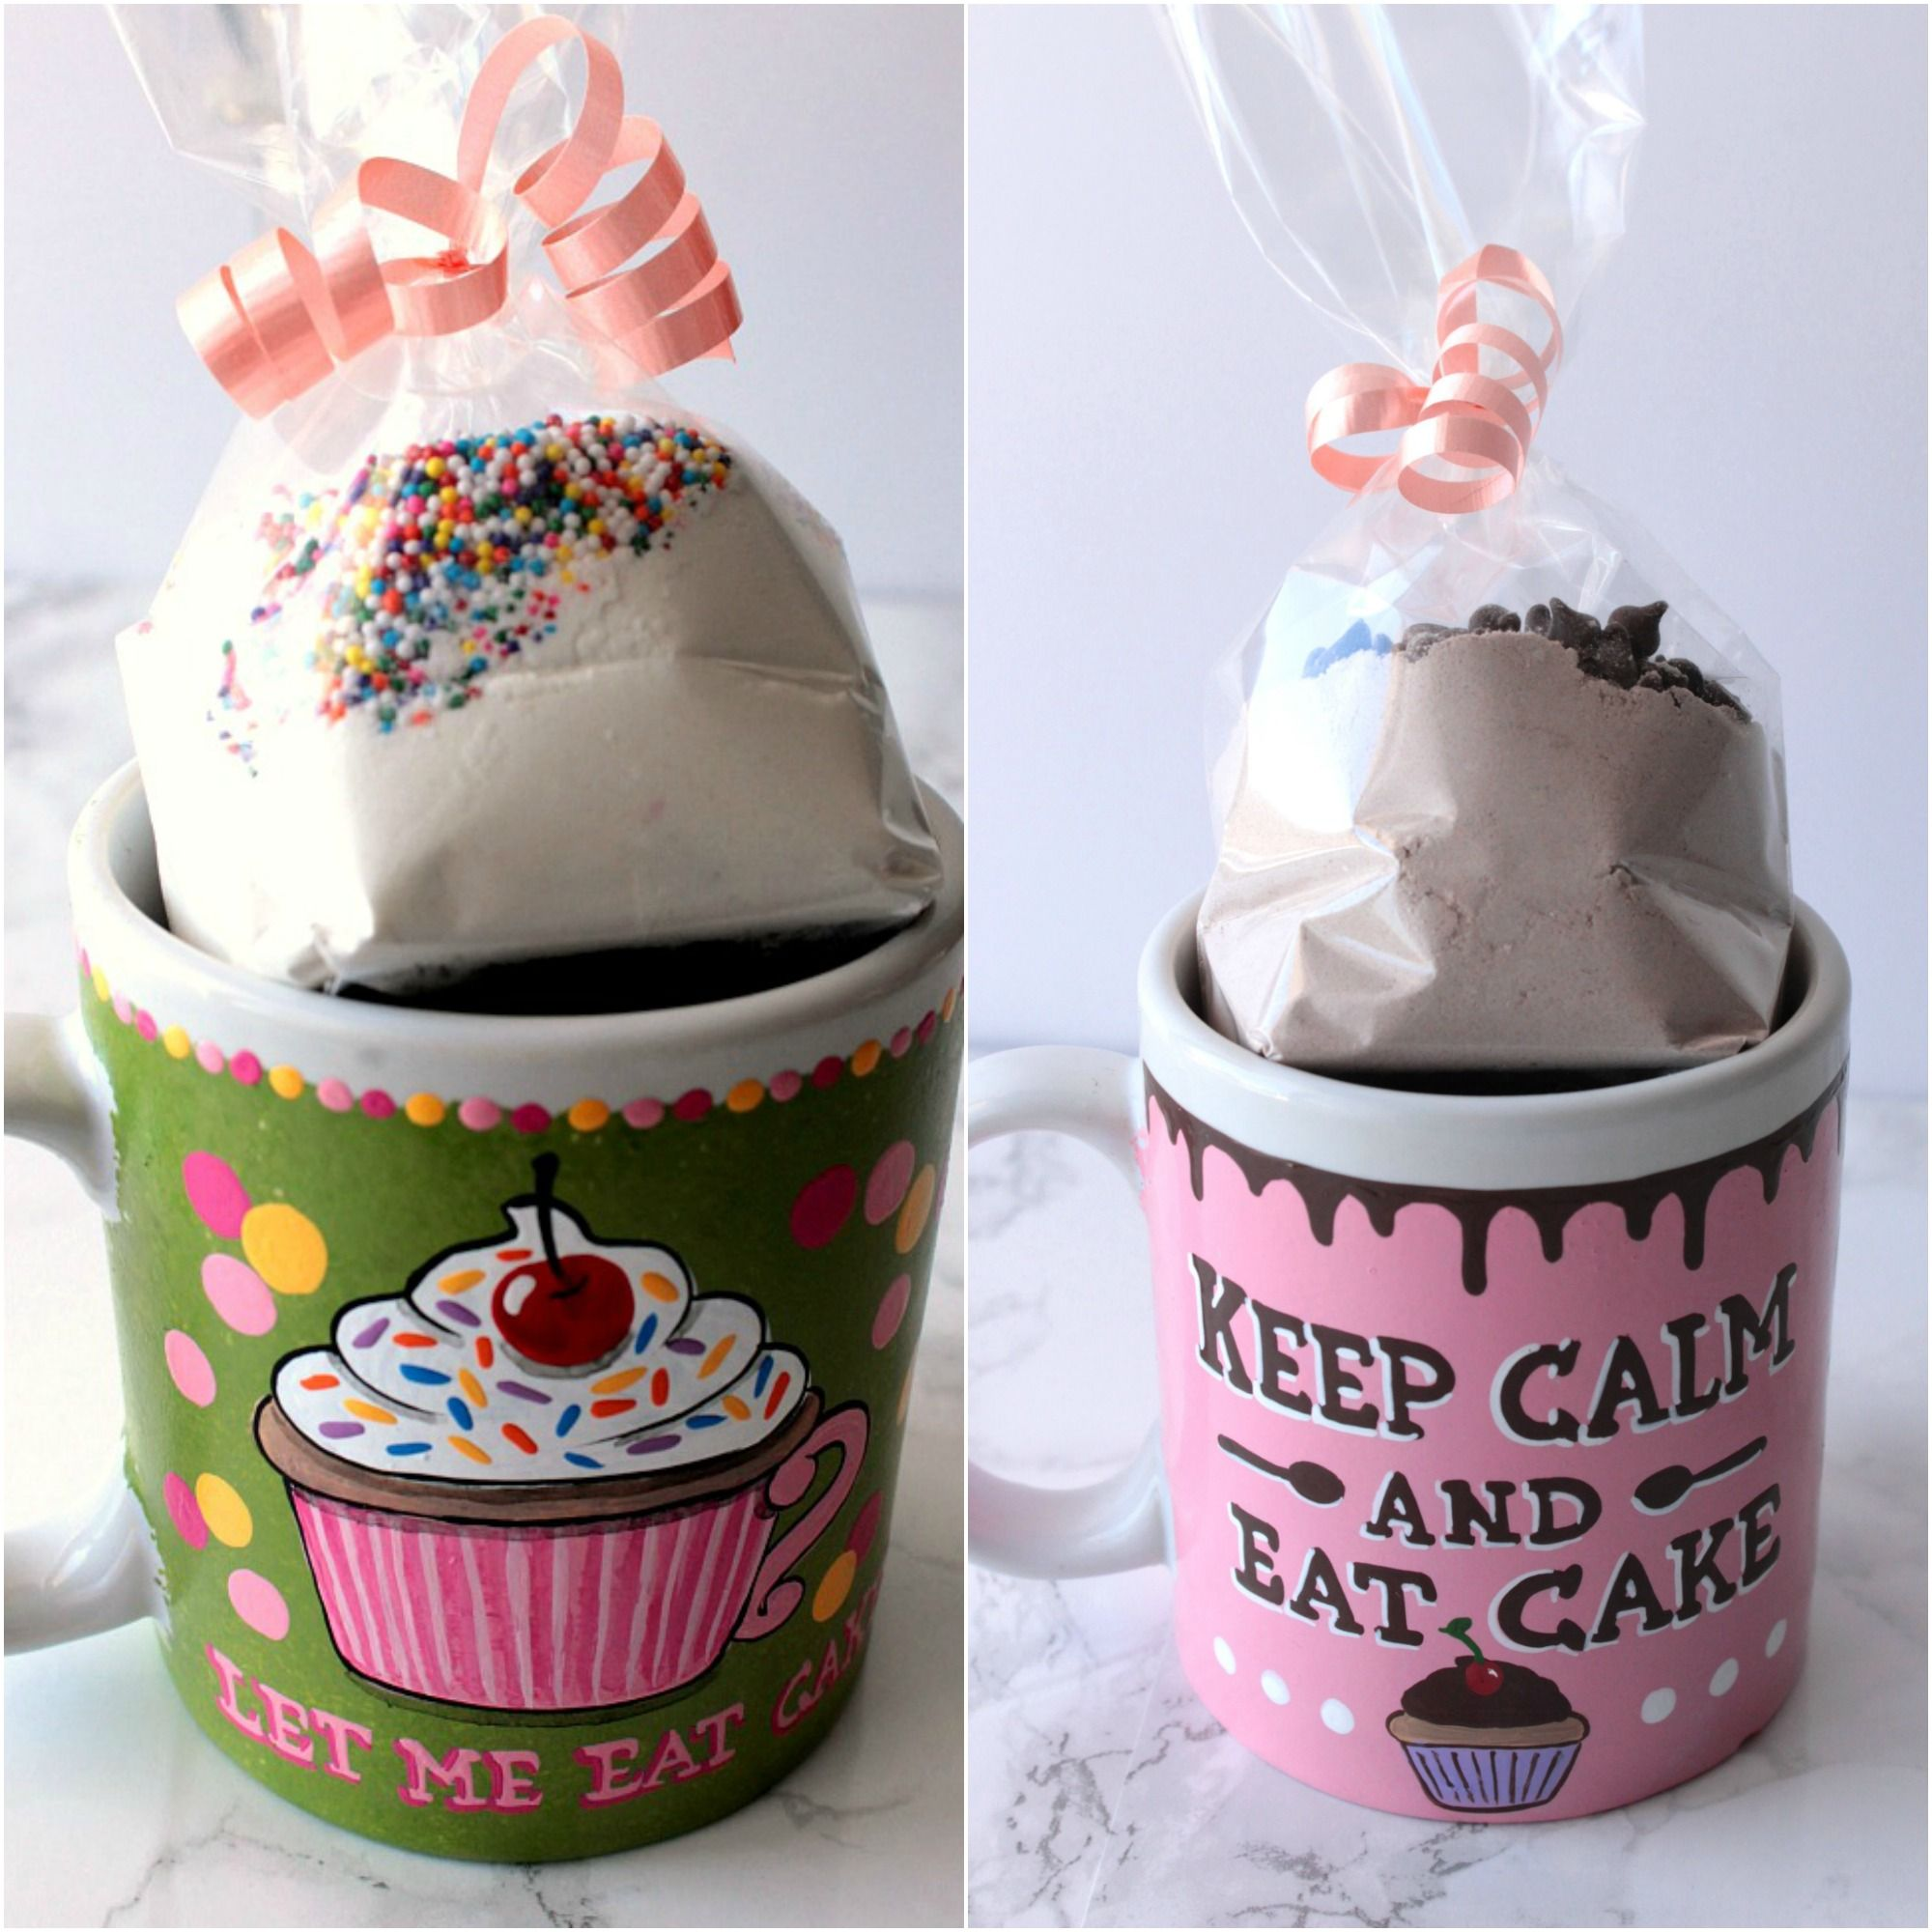 Just Add Water Mug Cake And Mix Recipe Gift Set